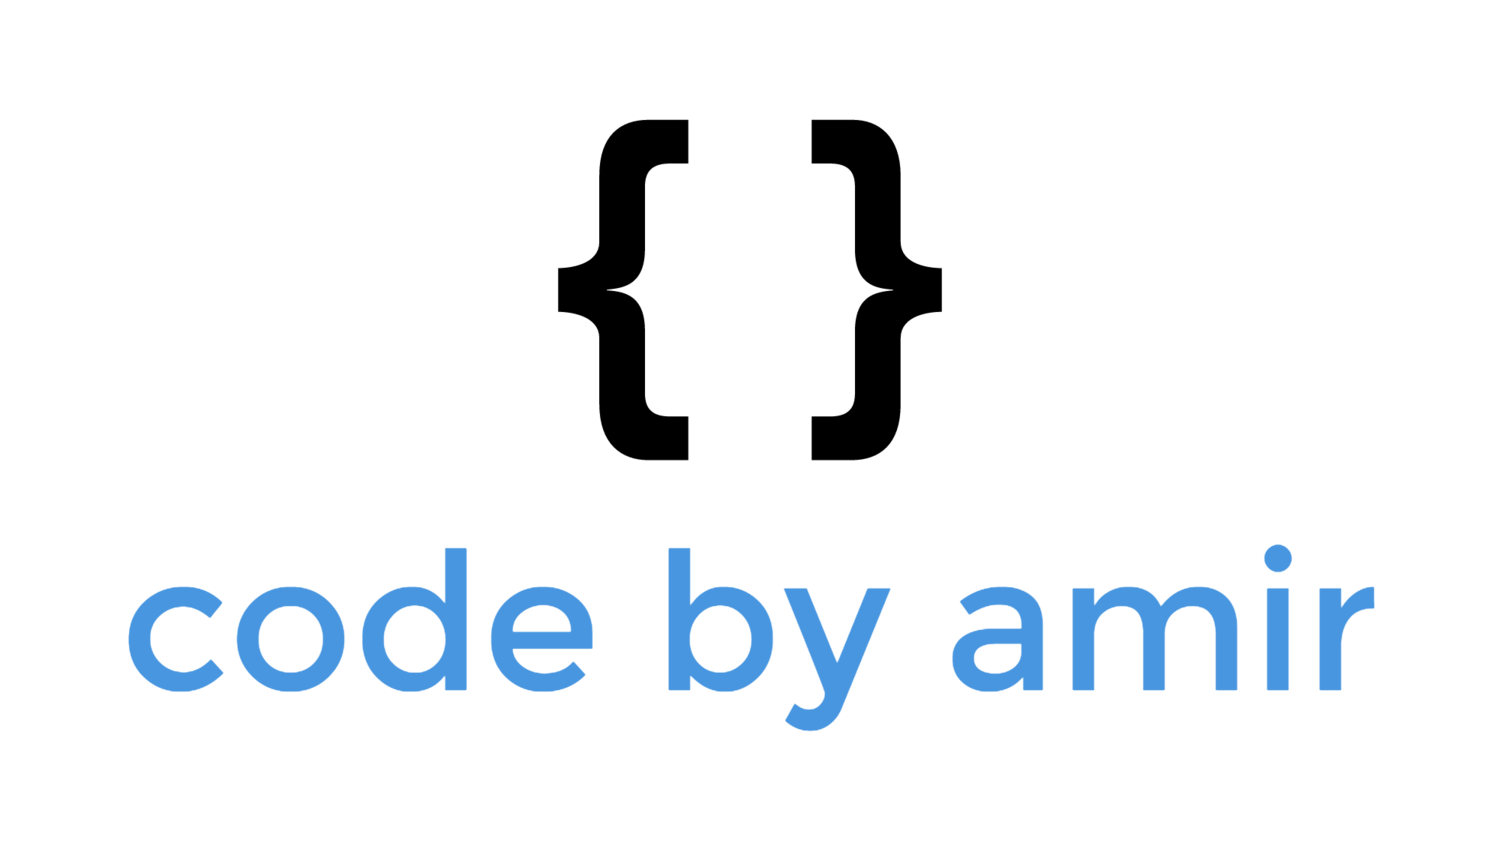 Code by Amir | Amir Boroumand